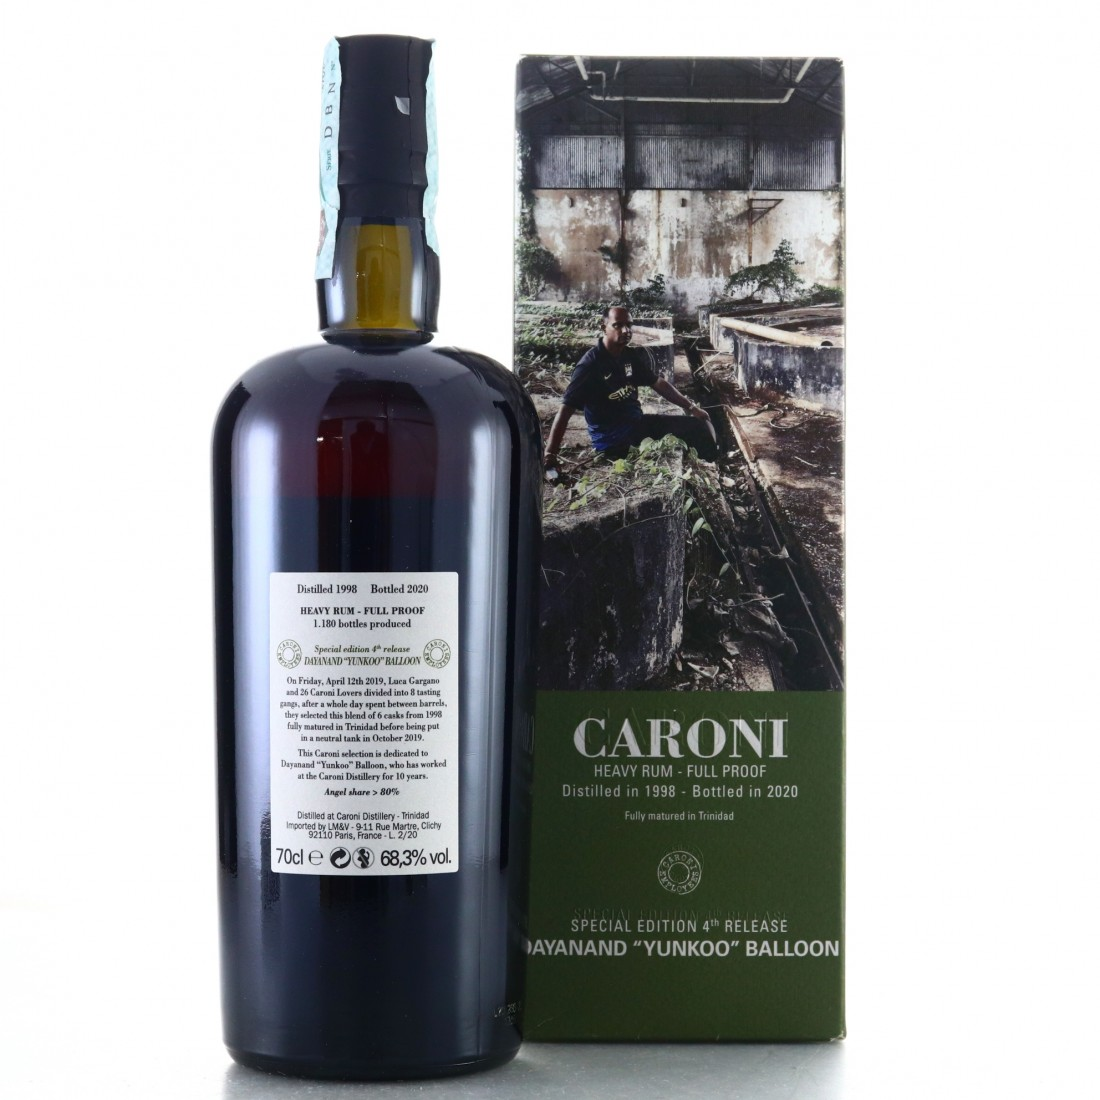 Caroni 1998 Velier Full Proof Heavy / Dayanand 'Yunkoo' Balloon